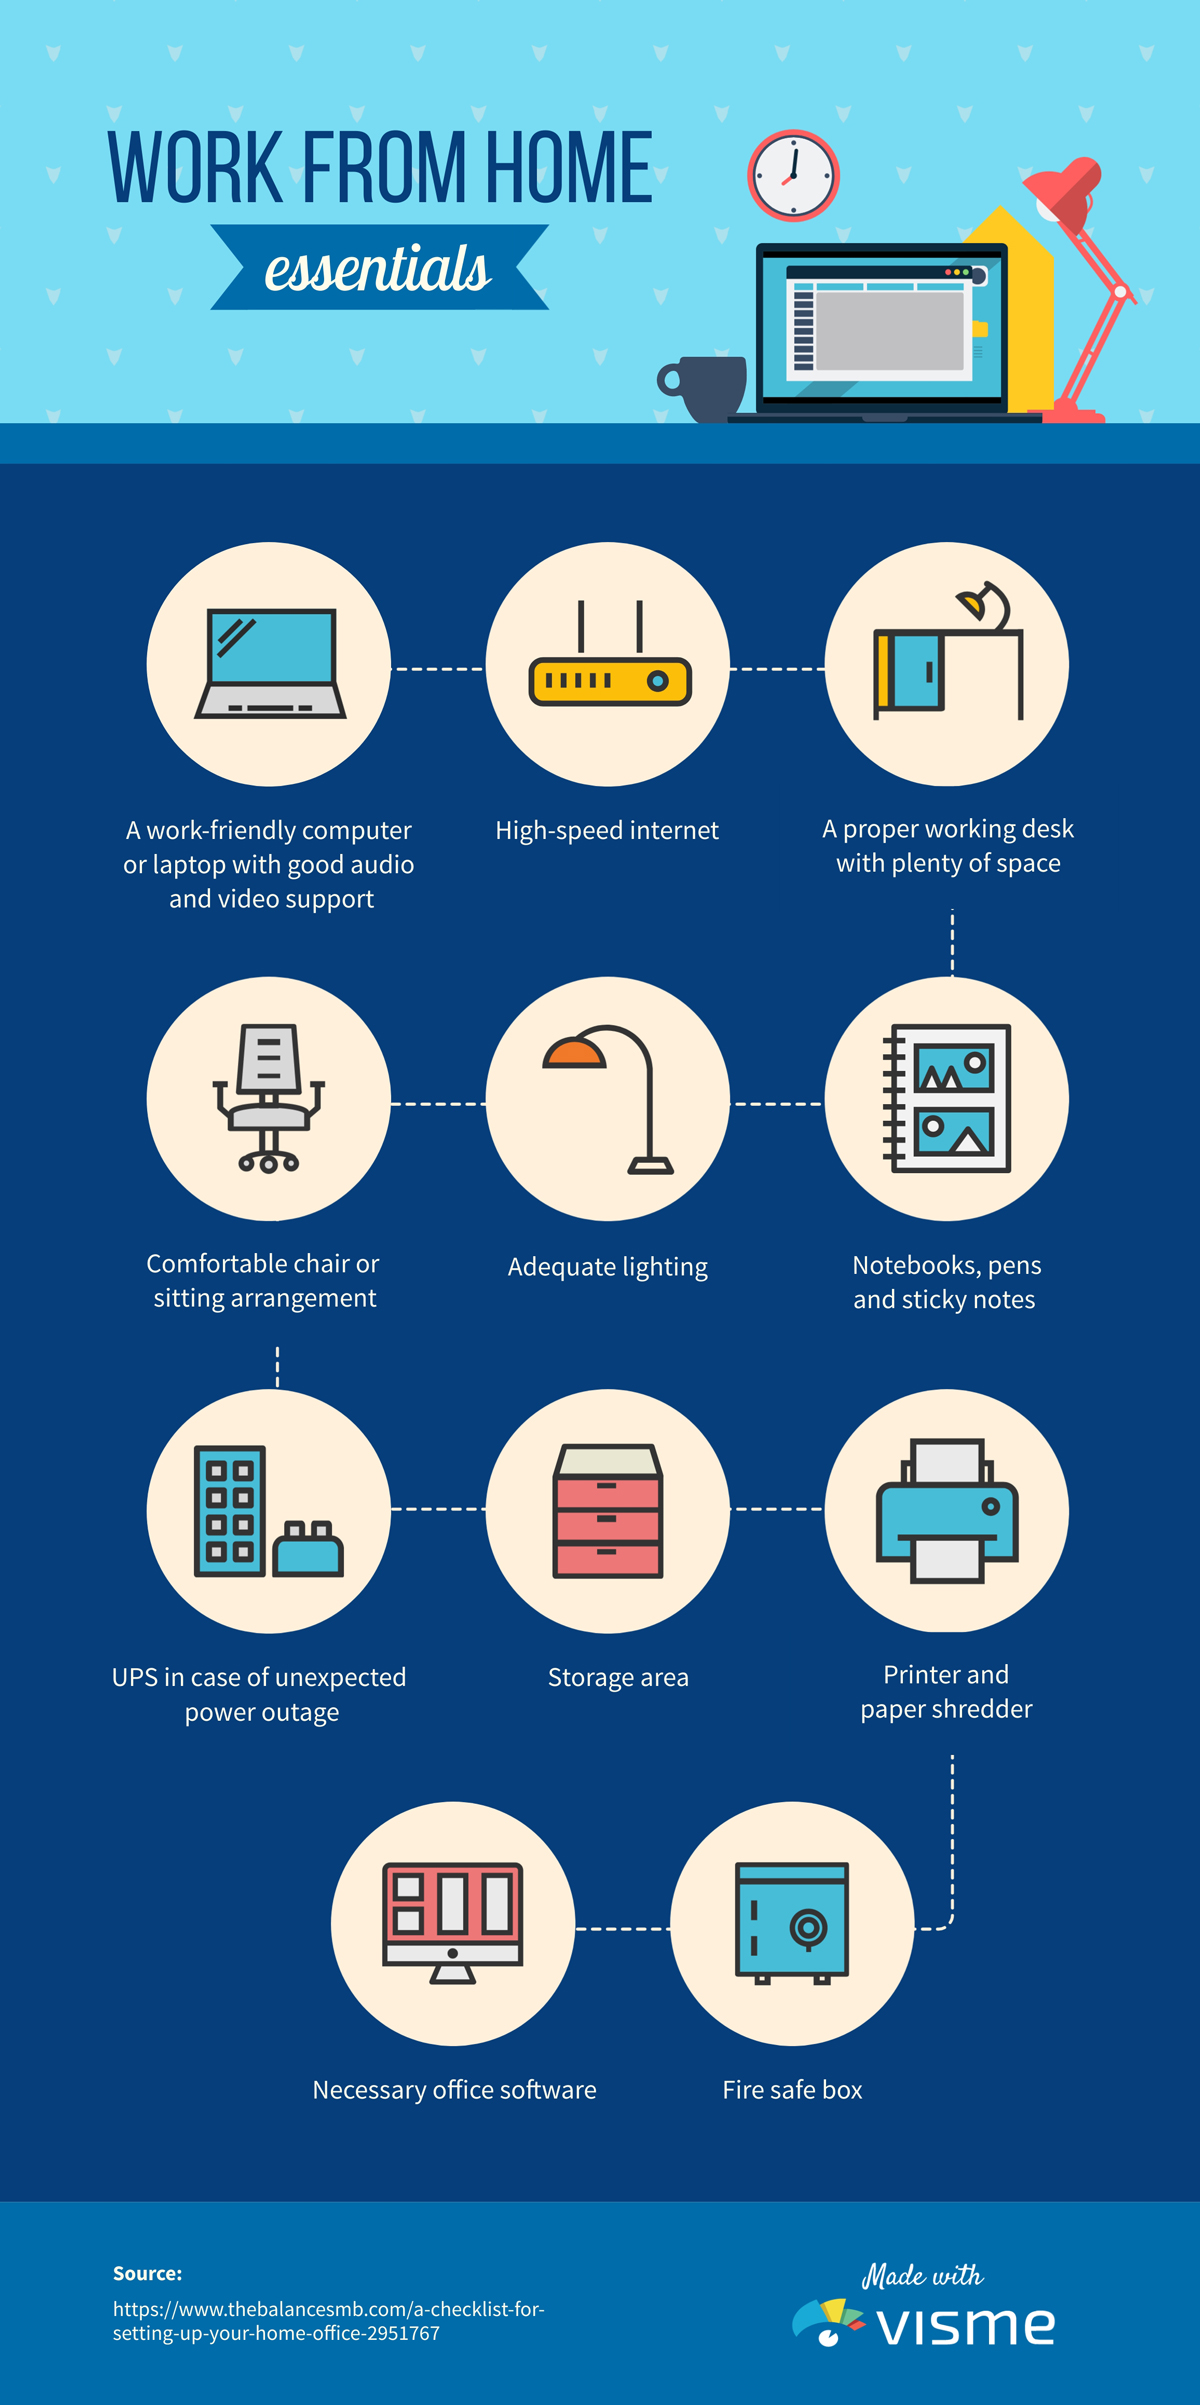 An infographic template showcasing work from home essentials available to customize in Visme.